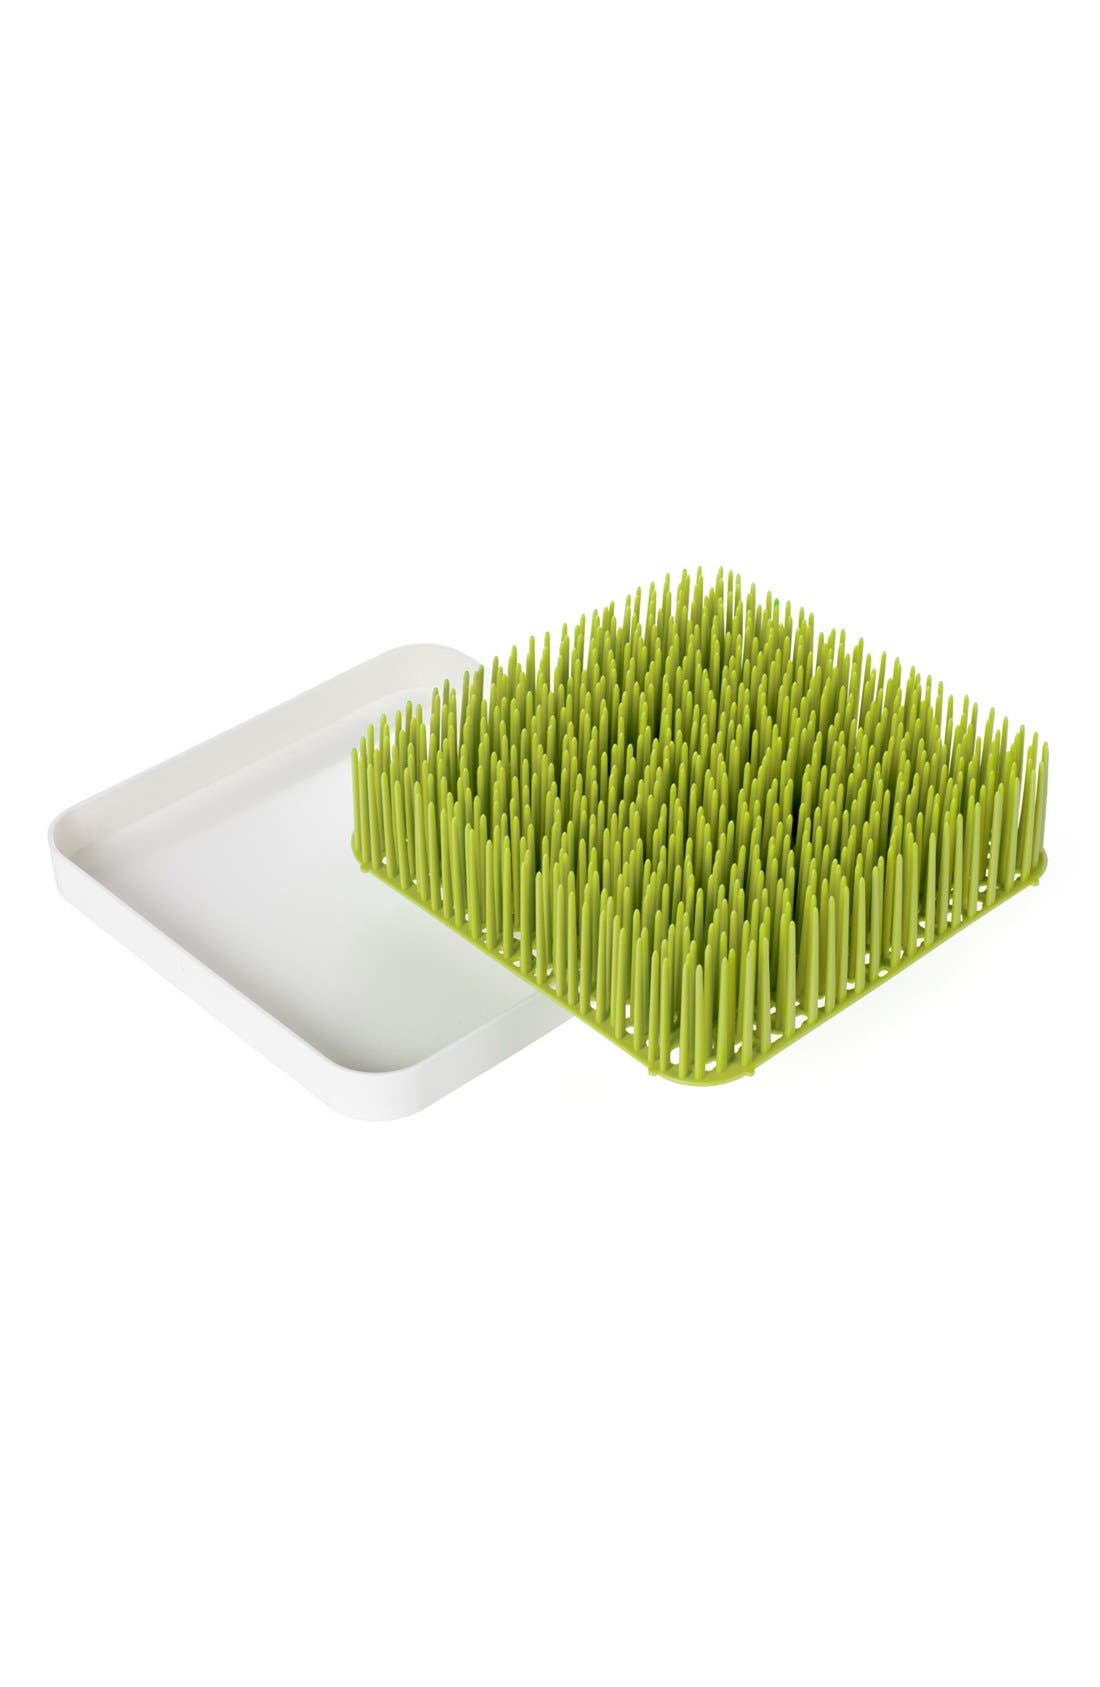 Alternate Image 1 Selected - Boon 'Grass' Drying Rack